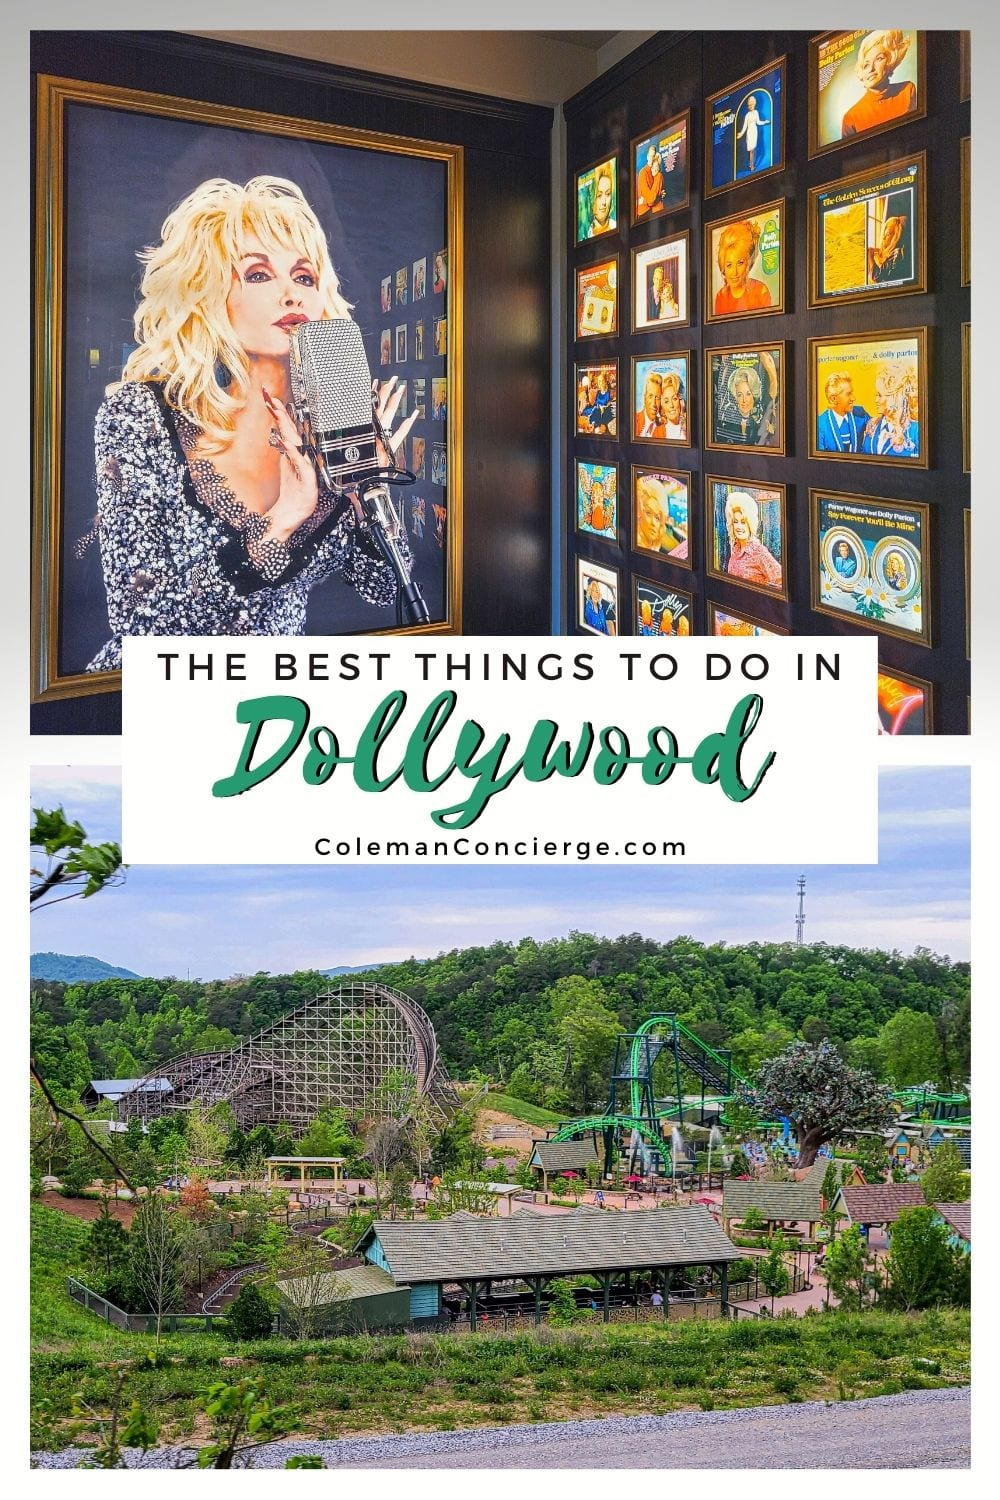 Image of Dolly Parton and Dollywood